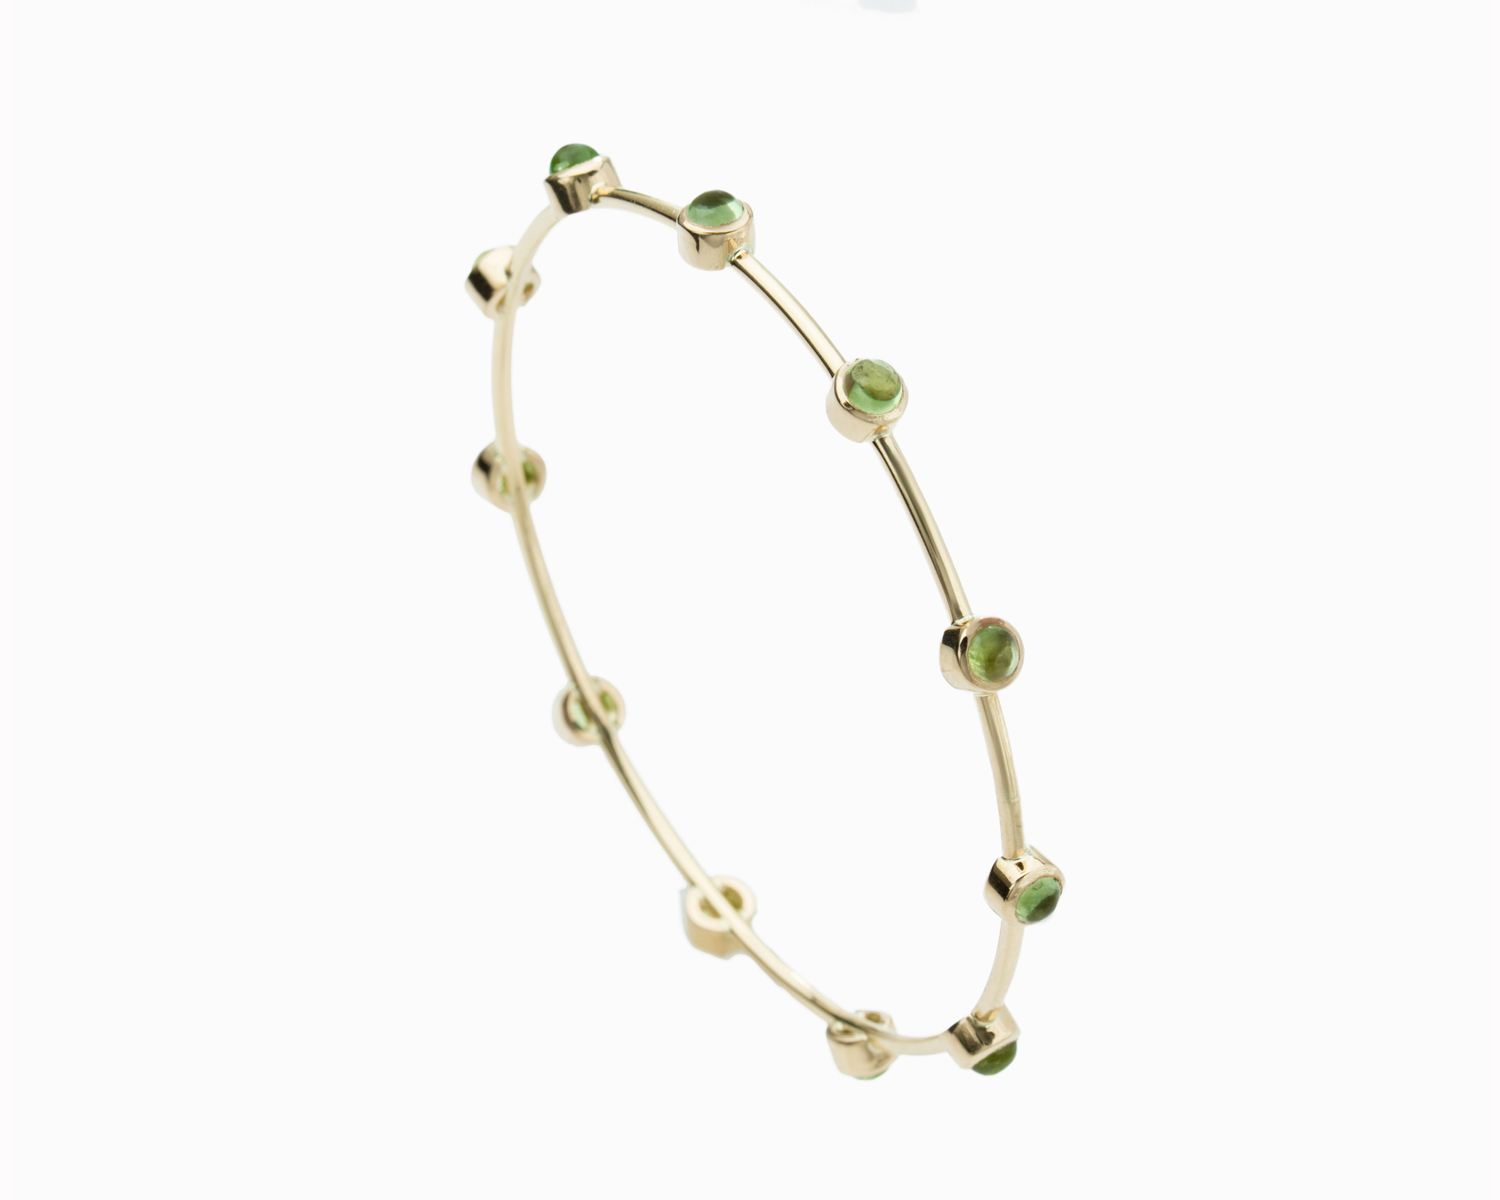 18k Gold Peridot Bangle Bracelet